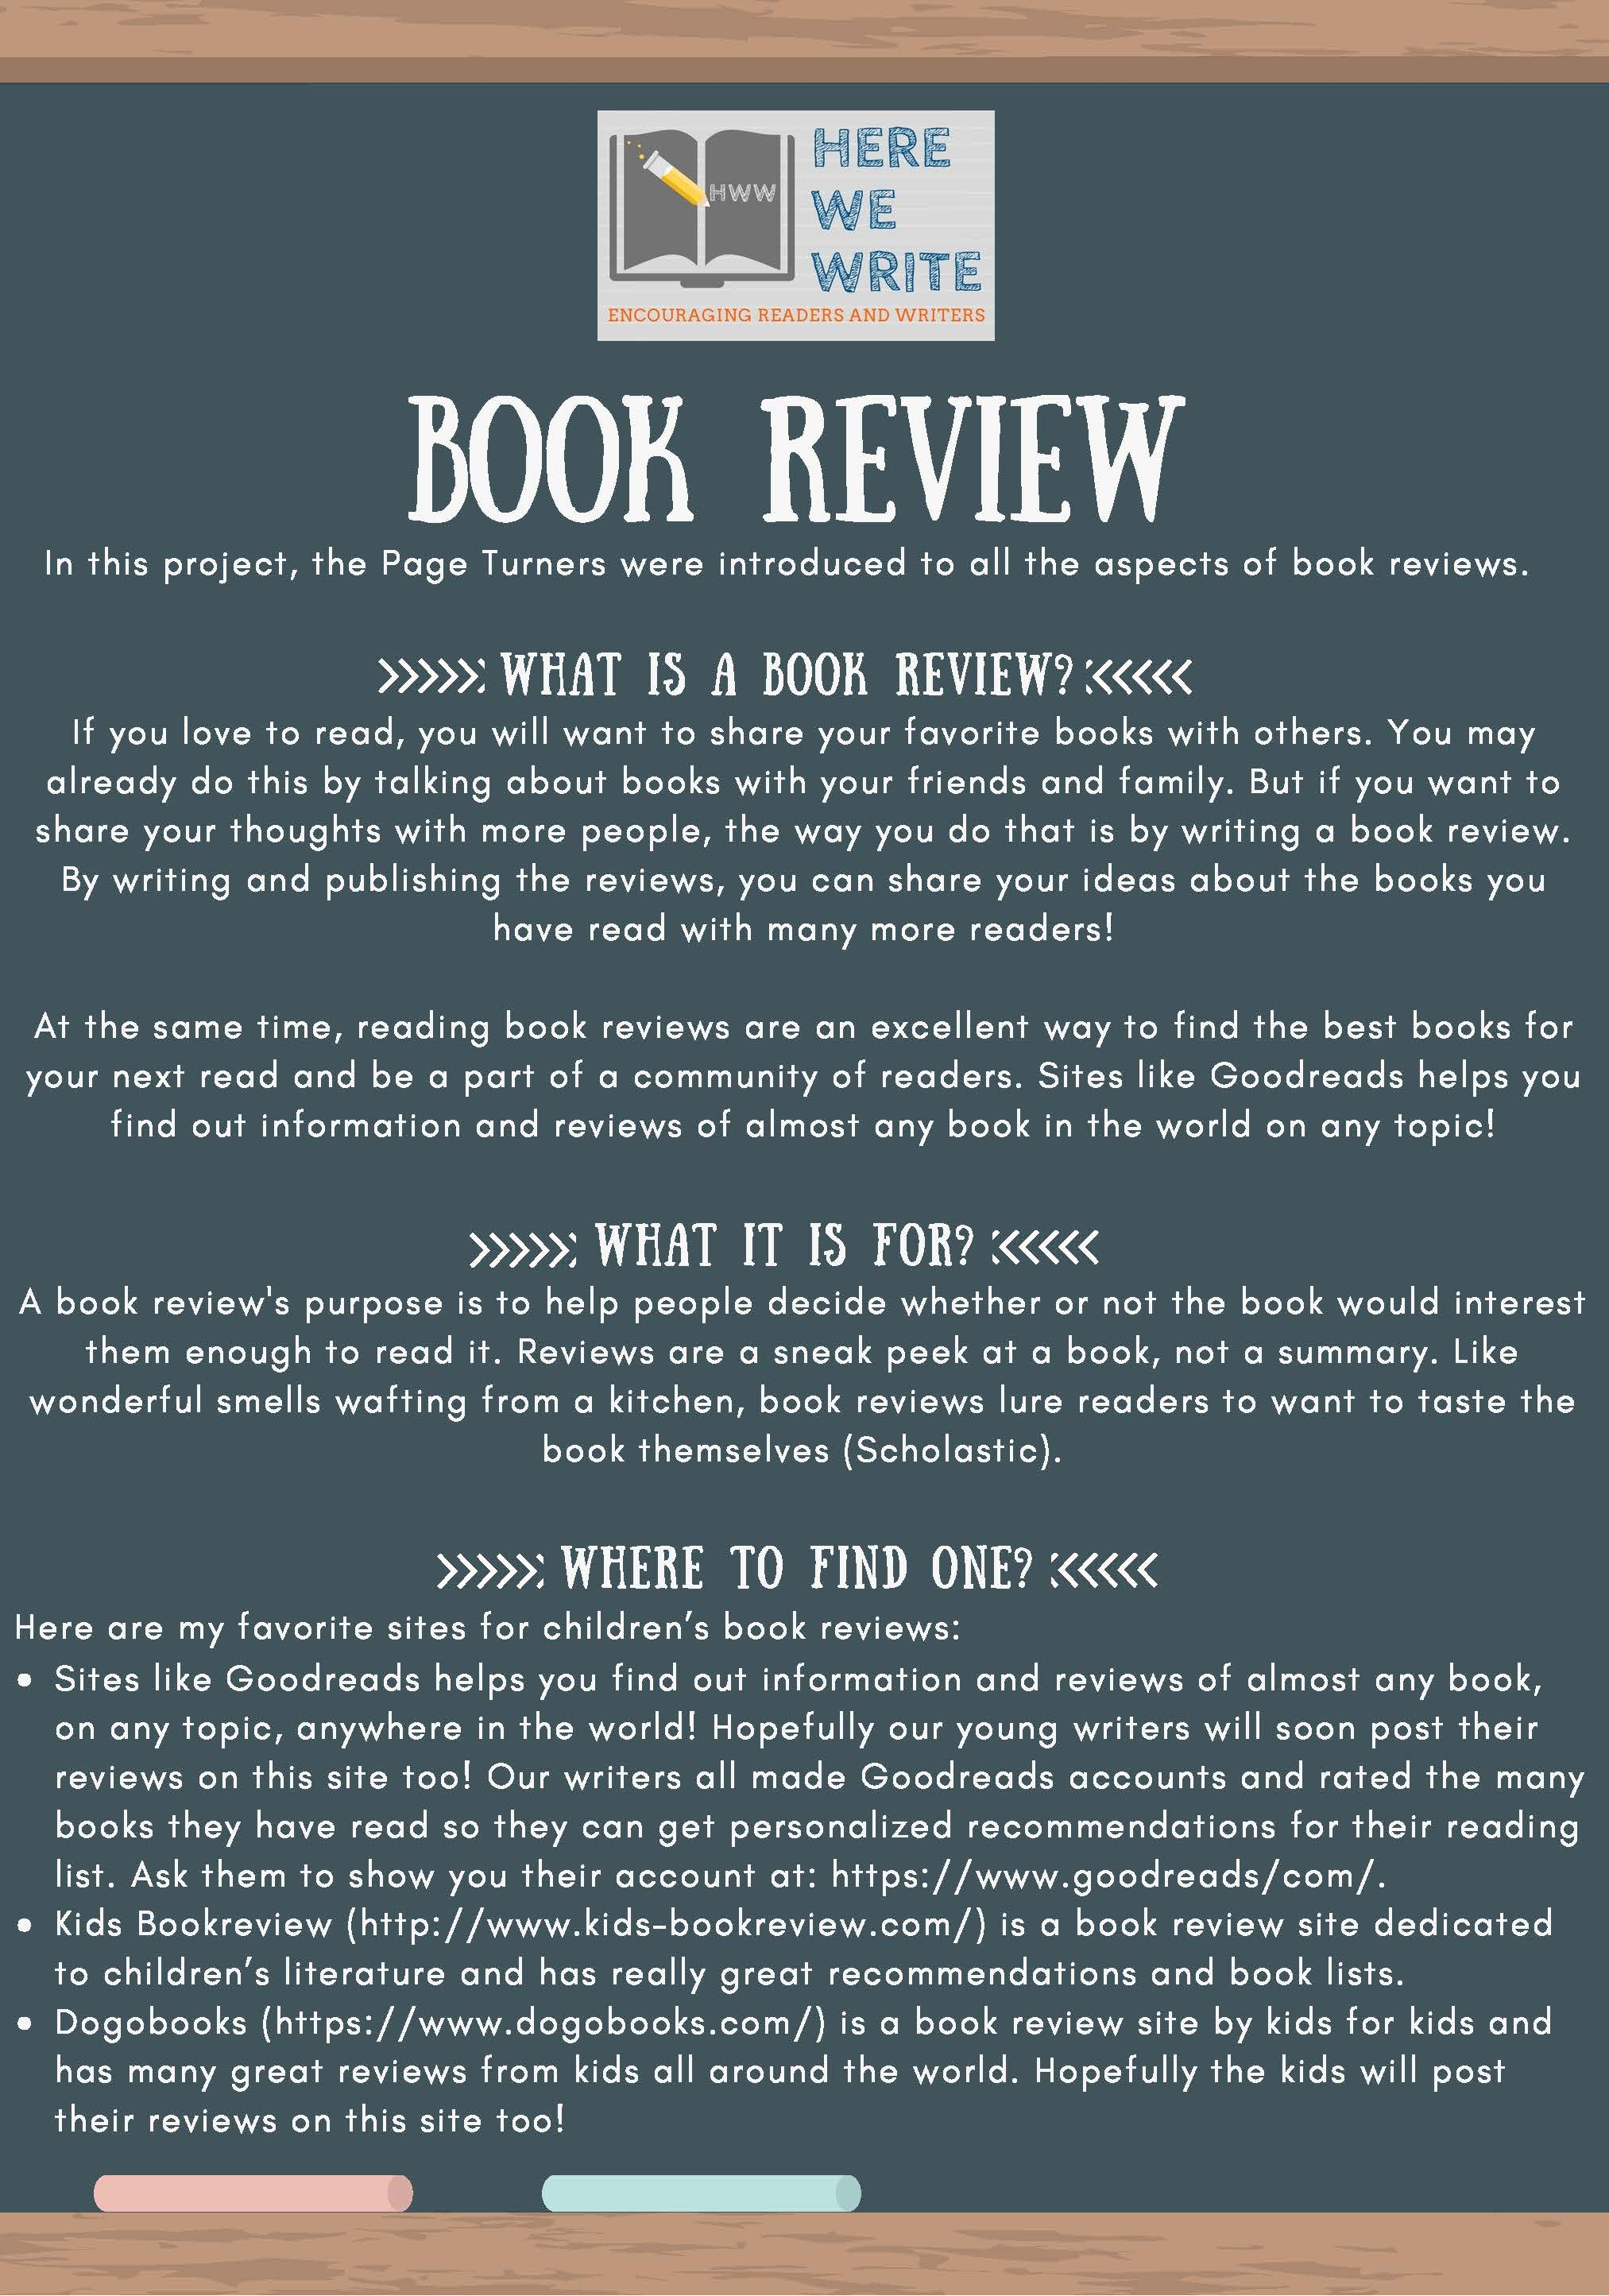 Page Turners - Book Review_Page_2